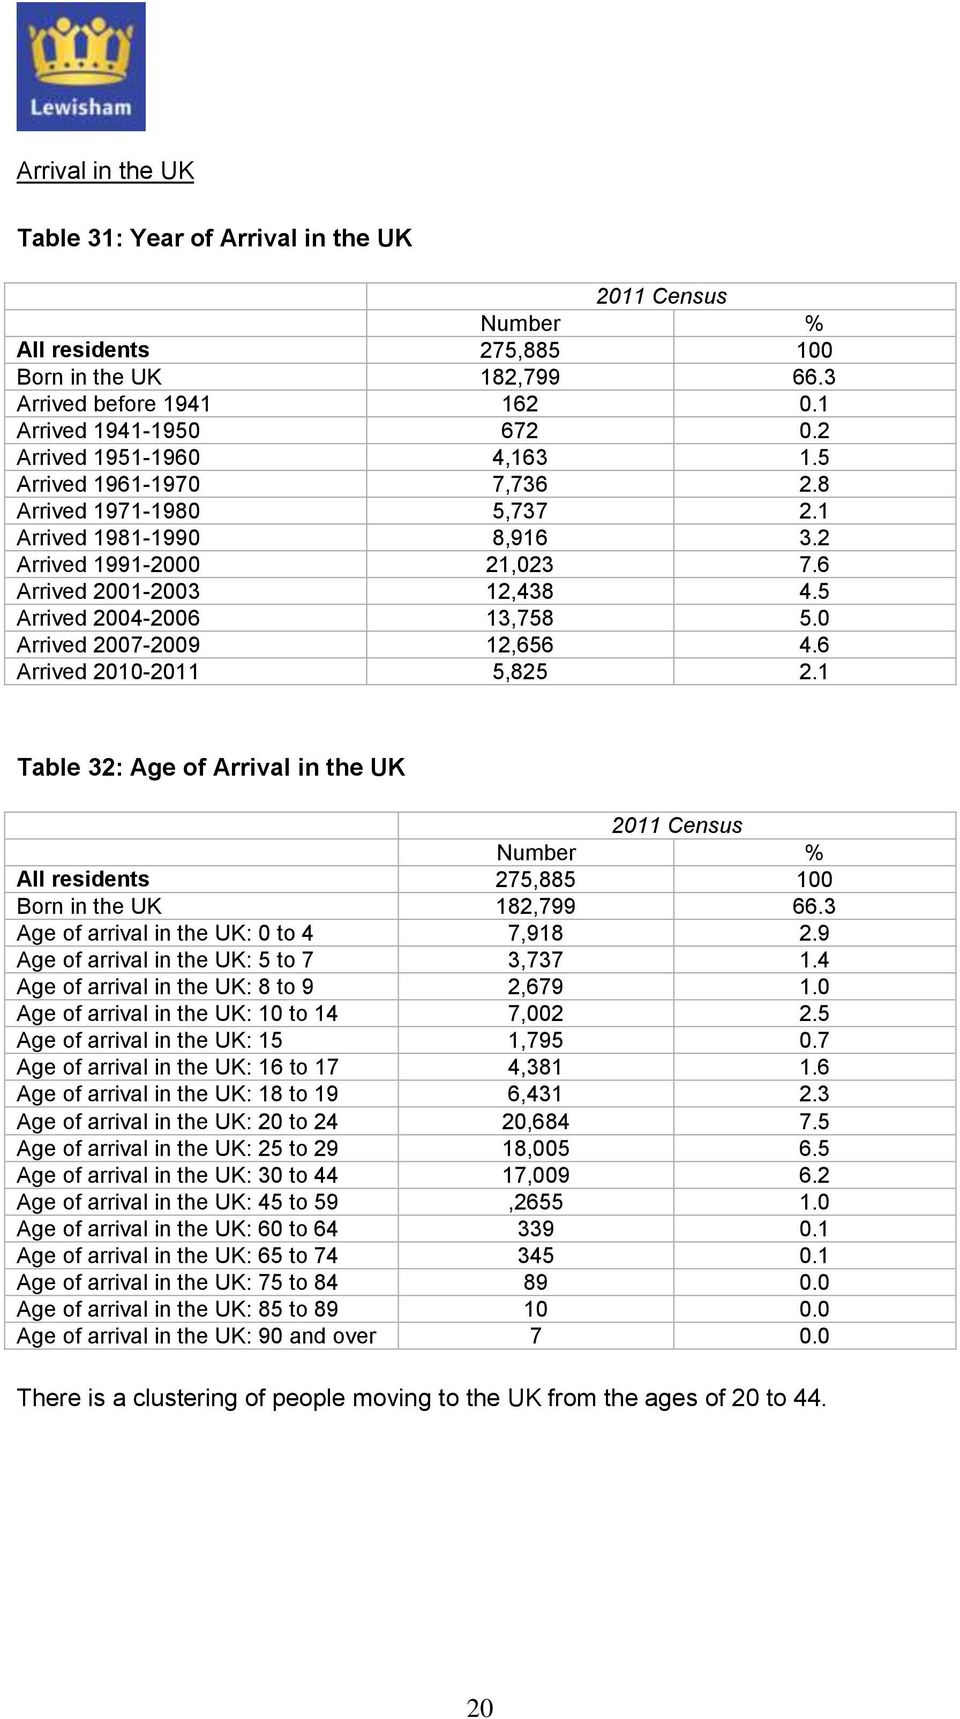 0 Arrived 2007-2009 12,656 4.6 Arrived 2010-2011 5,825 2.1 Table 32: Age of Arrival in the UK 2011 Census Number % All residents 275,885 100 Born in the UK 182,799 66.